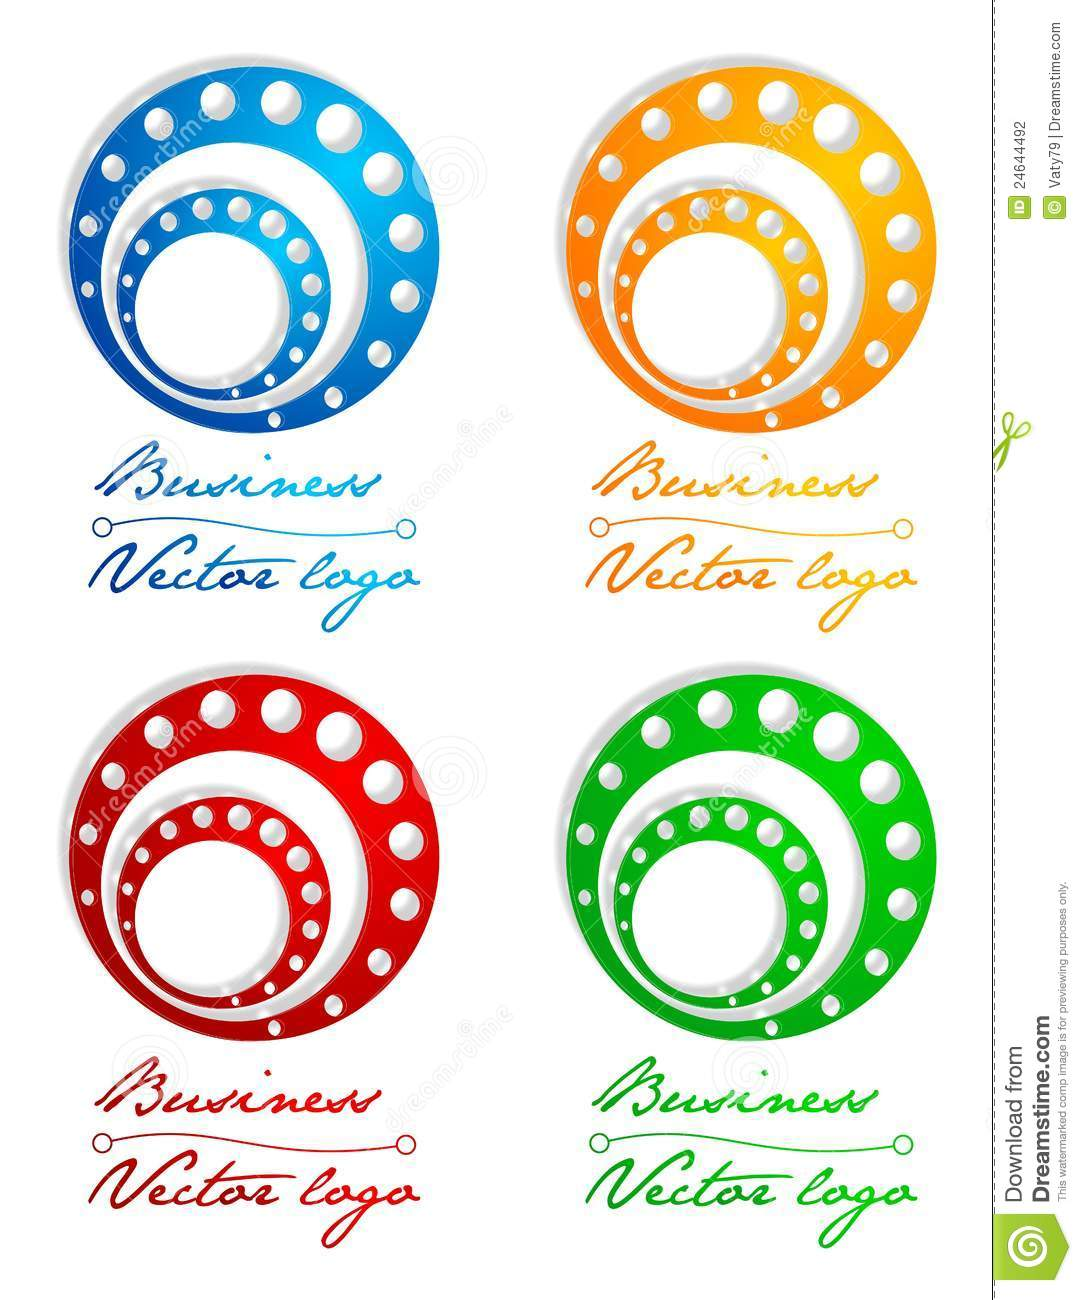 3D Colored Circle In Circle Logo Stock Photography - Image